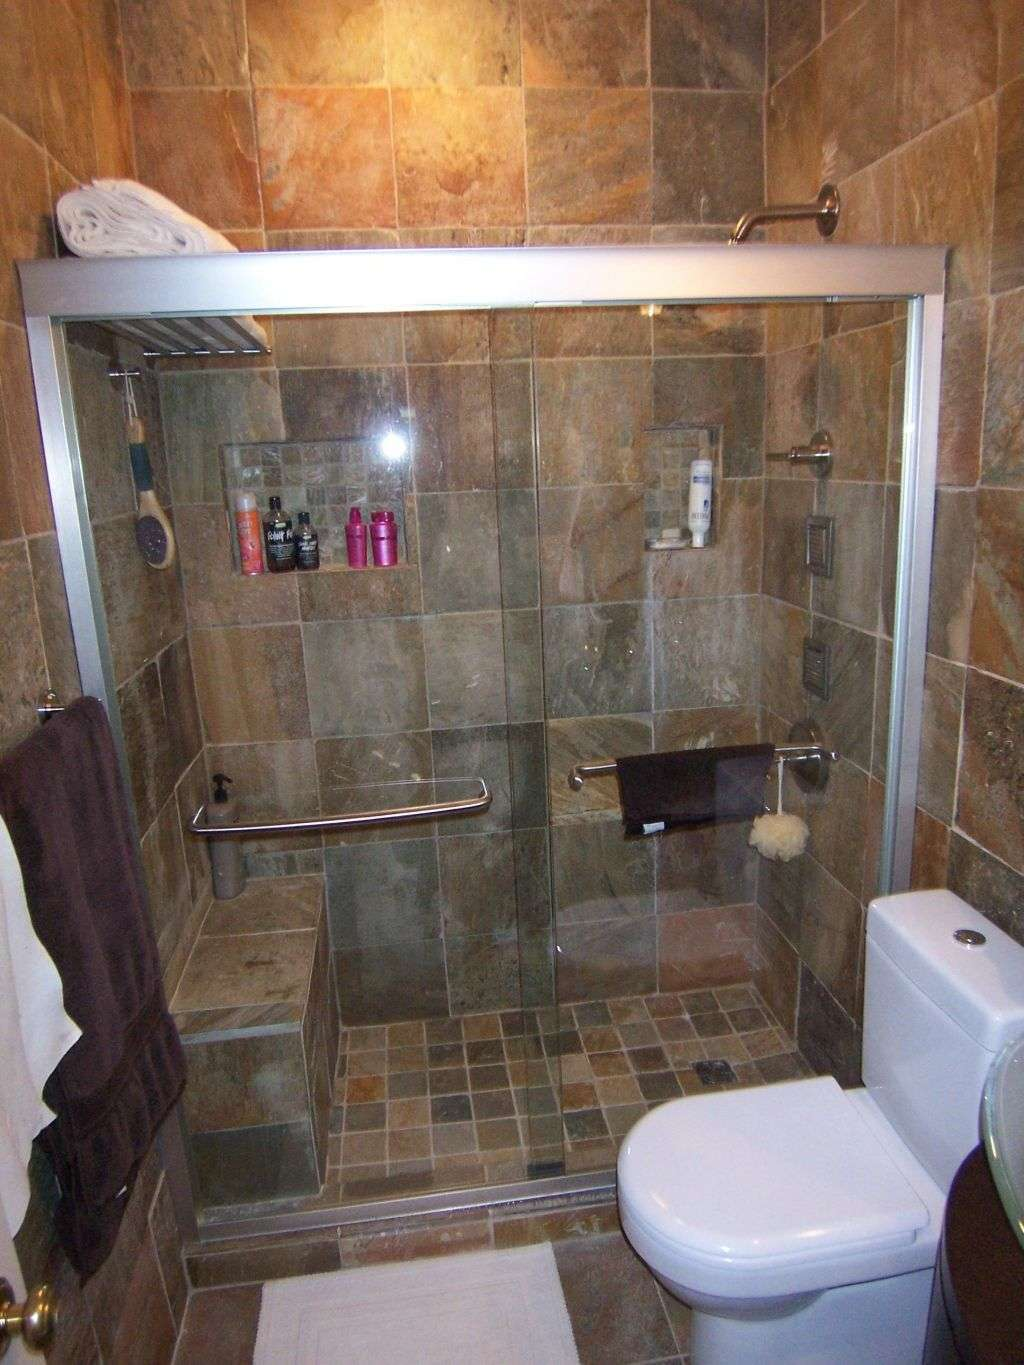 40 wonderful pictures and ideas of 1920s bathroom tile designs Tips for small bathrooms